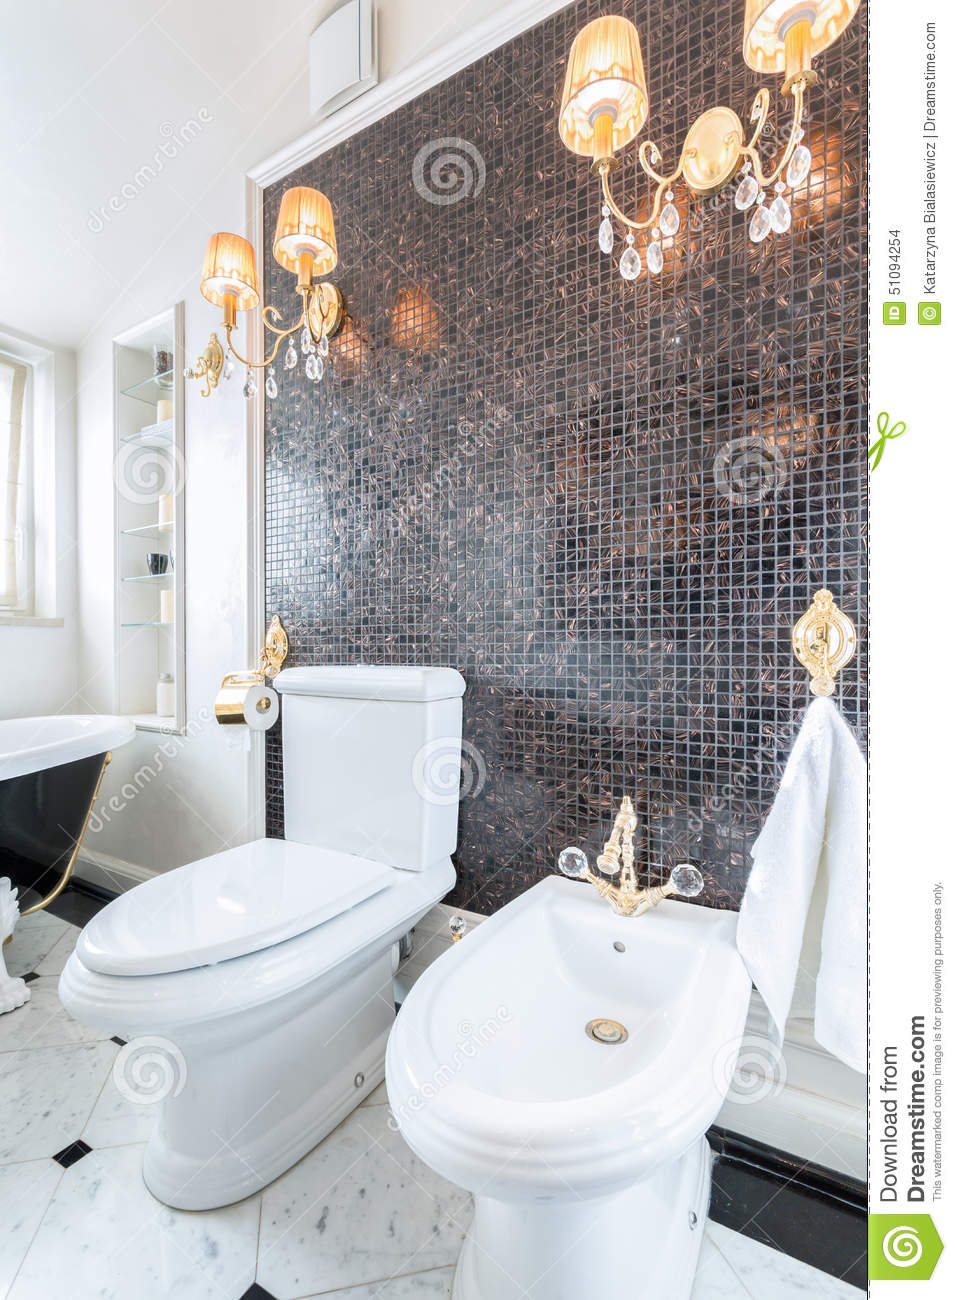 lustres en cristal dans la toilette de luxe photo stock. Black Bedroom Furniture Sets. Home Design Ideas